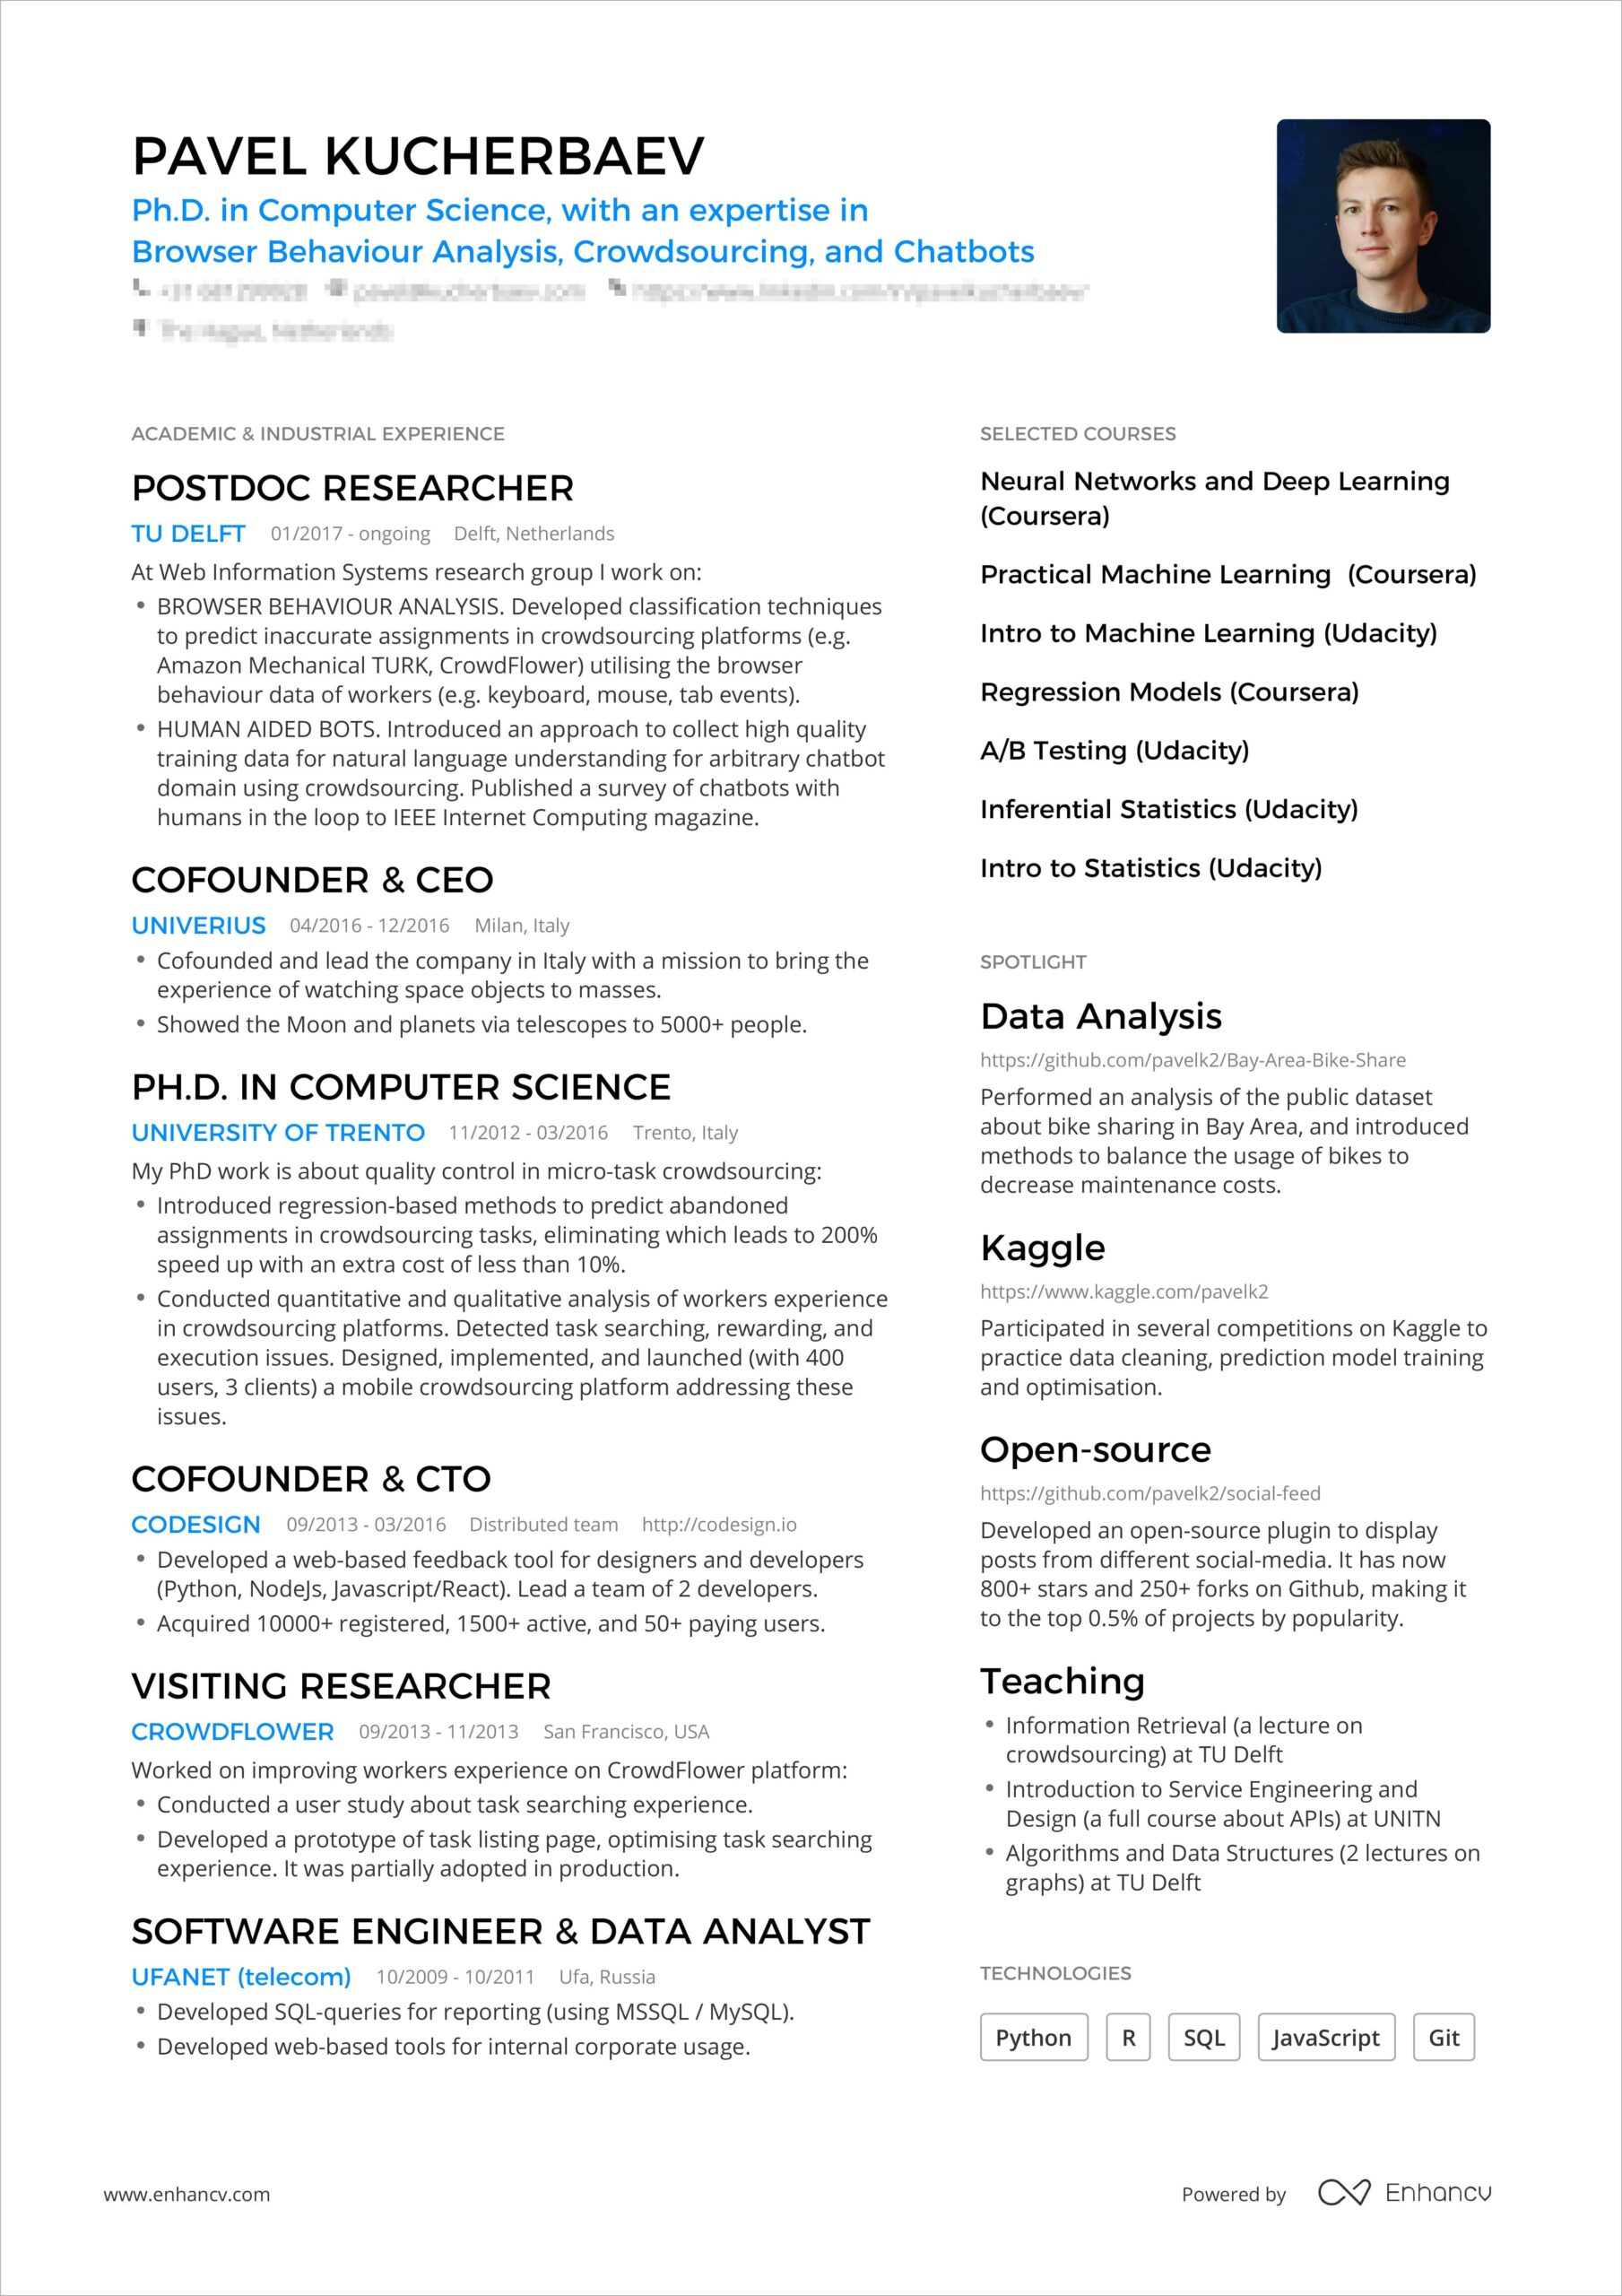 powerful one resume examples you can use now experience ideas for pavel booking bordered Resume Experience Ideas For Resume